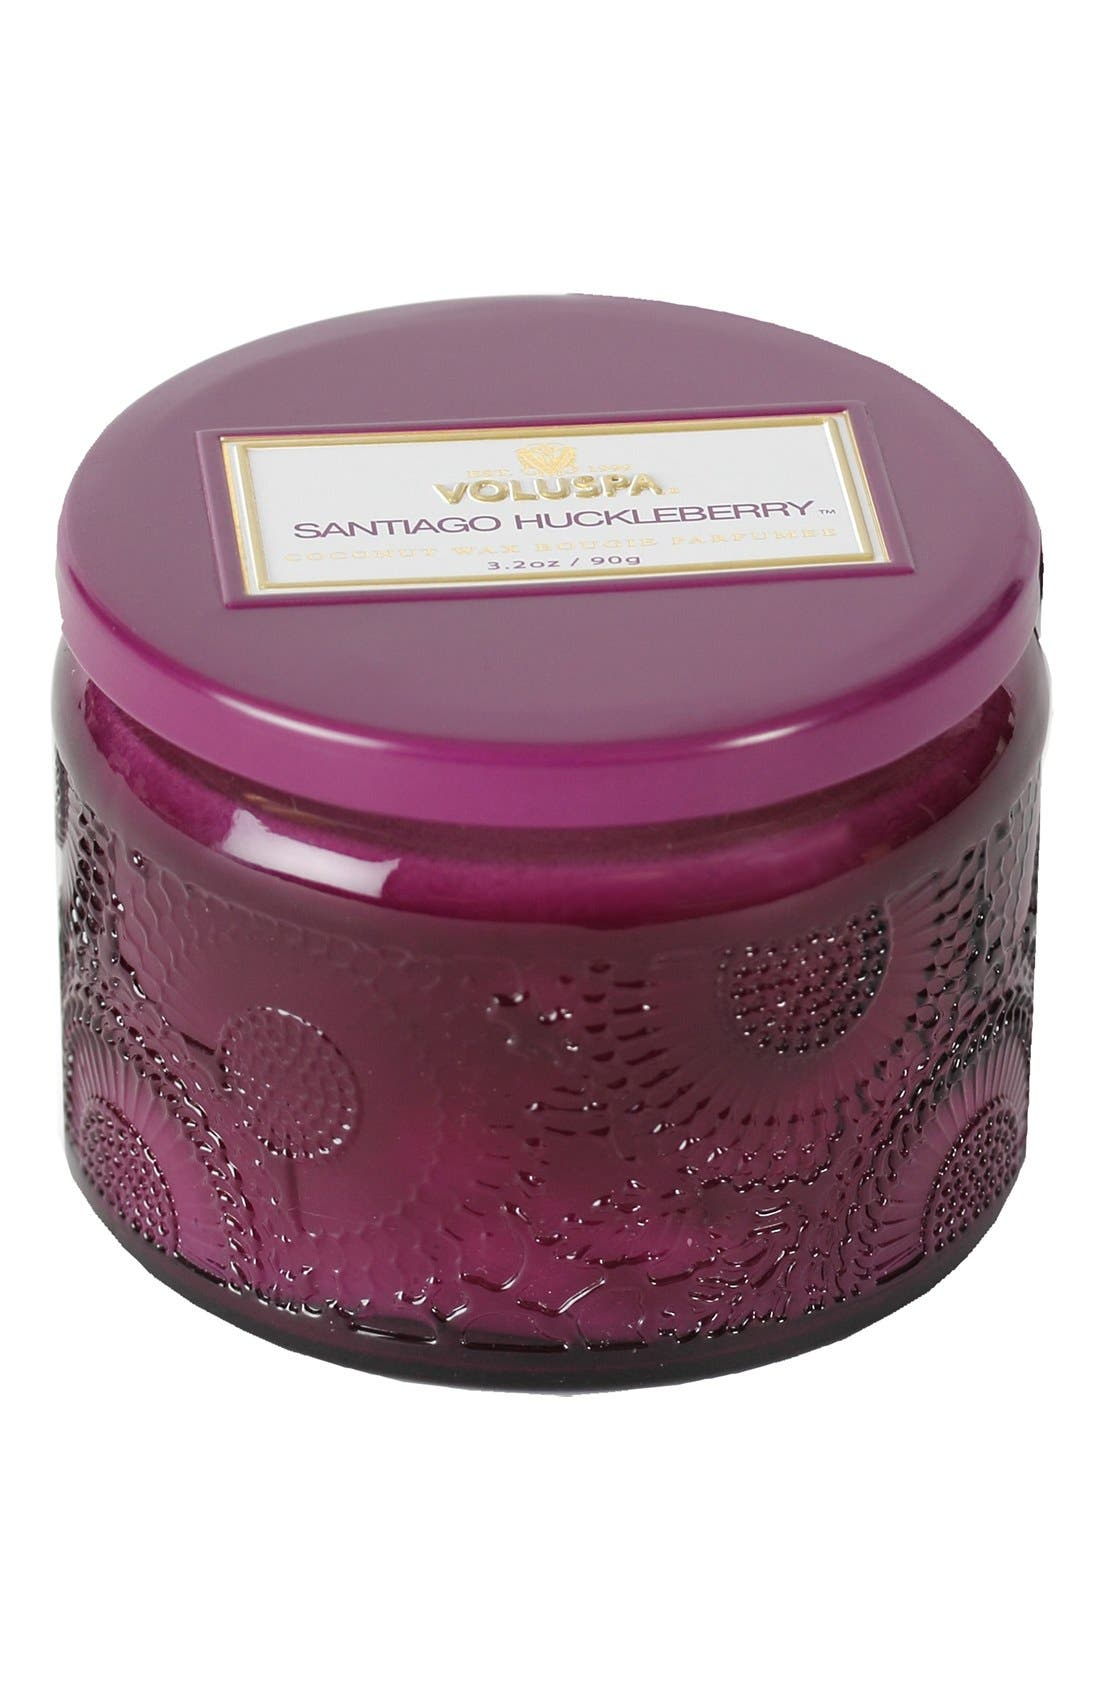 Voluspa 'Japonica - Santiago Huckleberry' Petite Colored Jar Candle